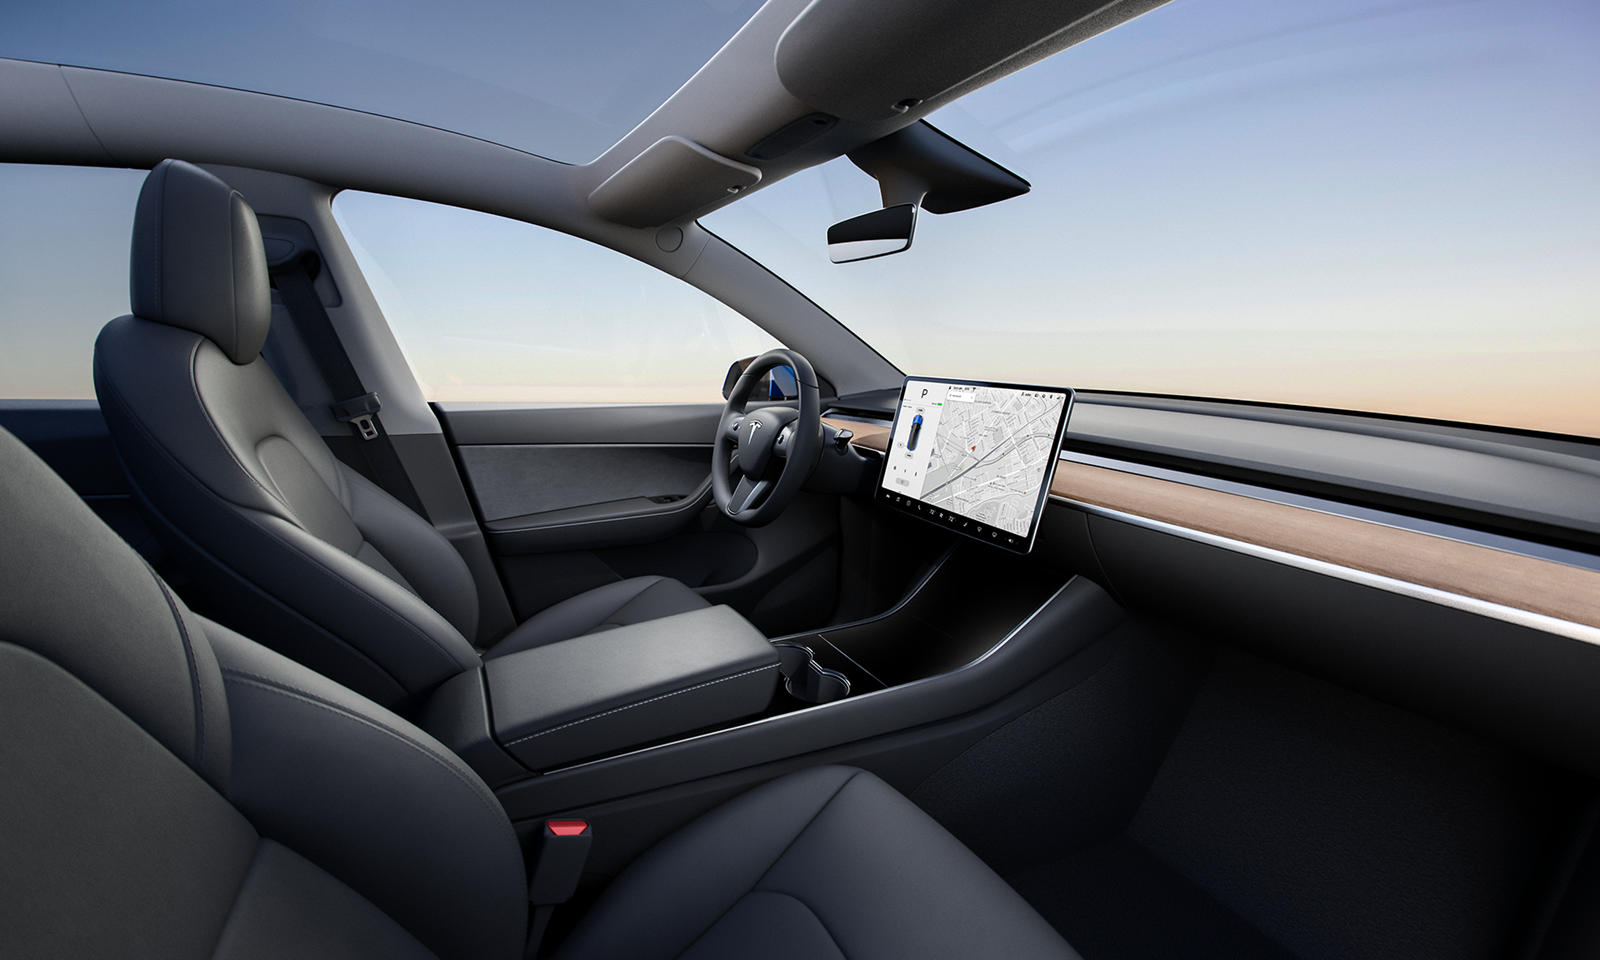 2021 Tesla Model Y Interior Cockpit Wallpapers 7   NewCarCars 1600x960